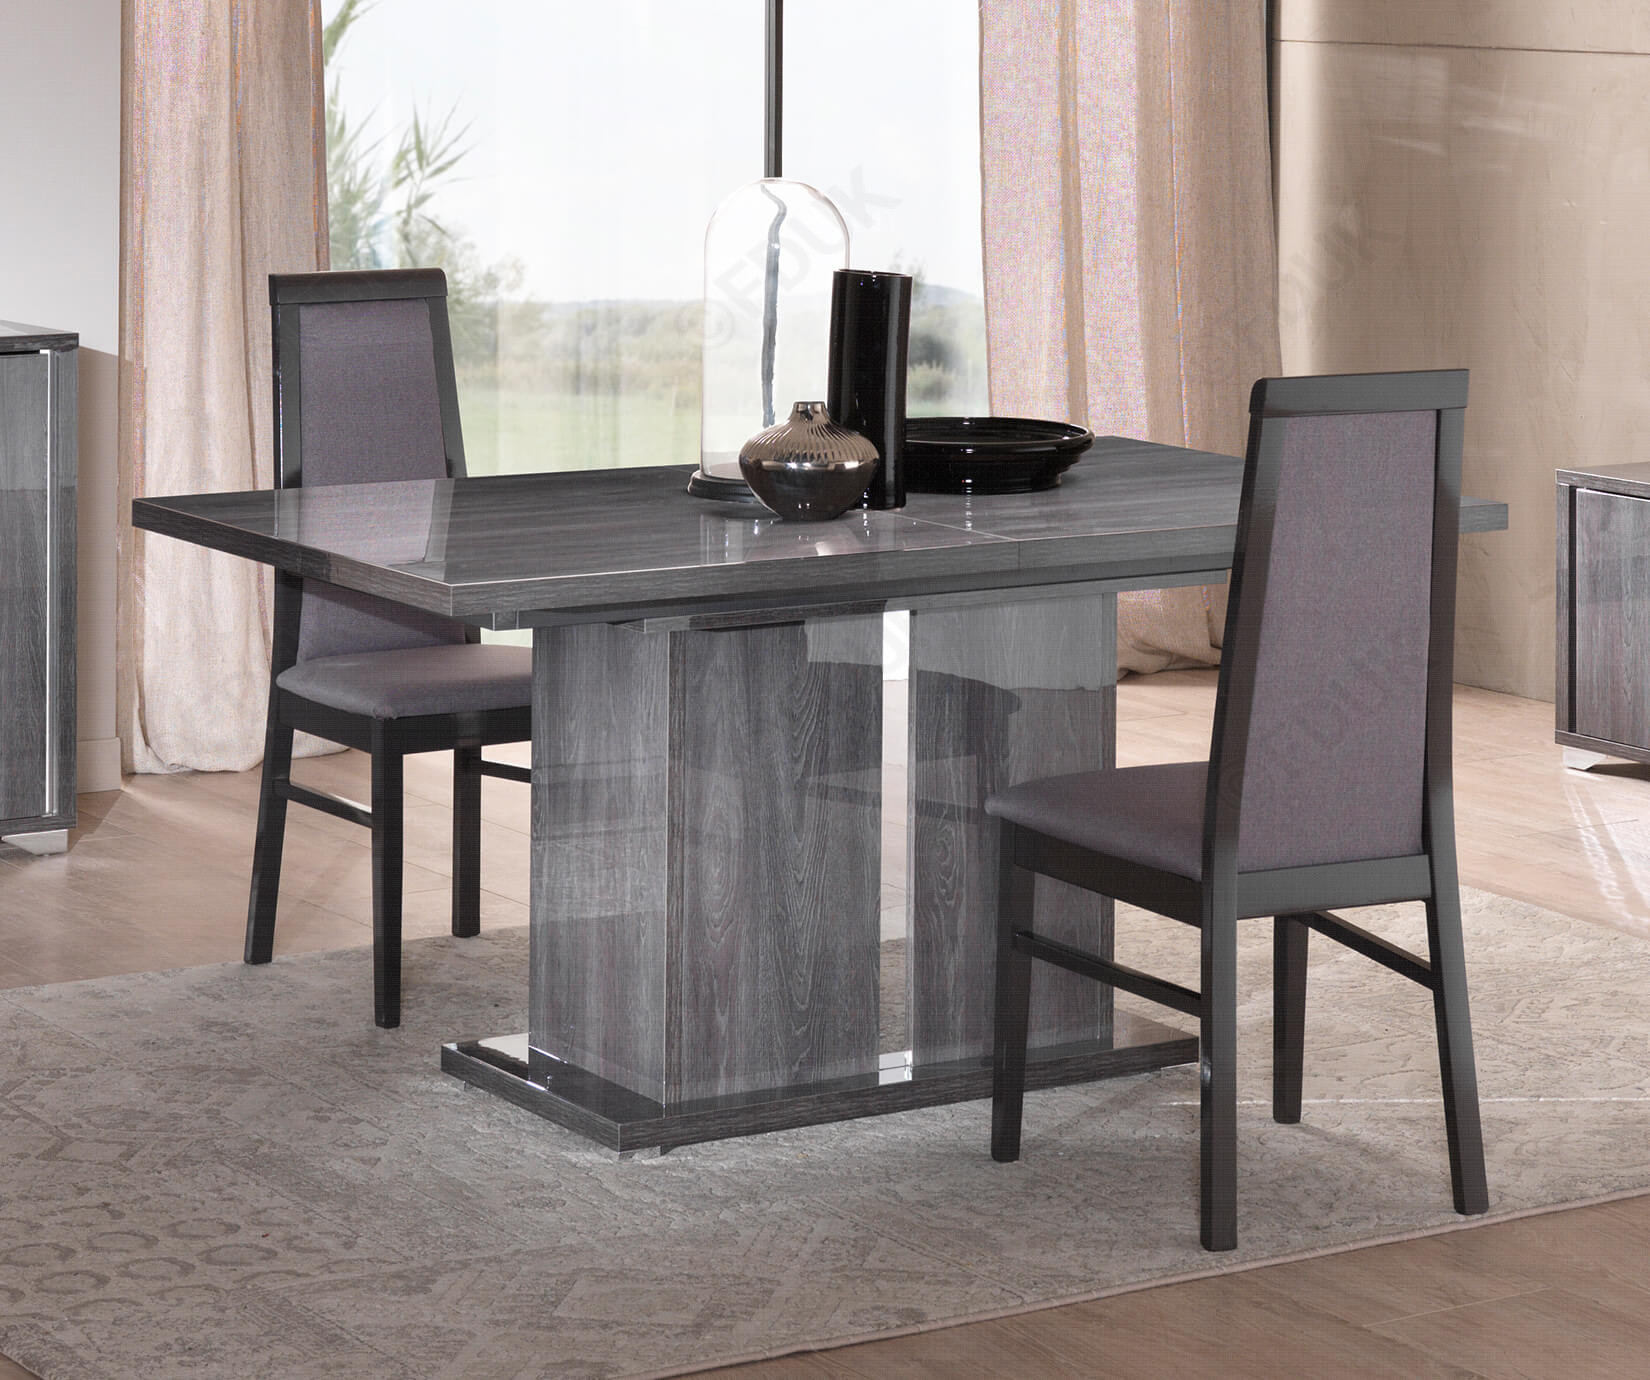 San Martino Armony Rectangular Extension Dining Table With 6 Dining Chair Pertaining To Most Recently Released Martino Dining Tables (View 11 of 25)